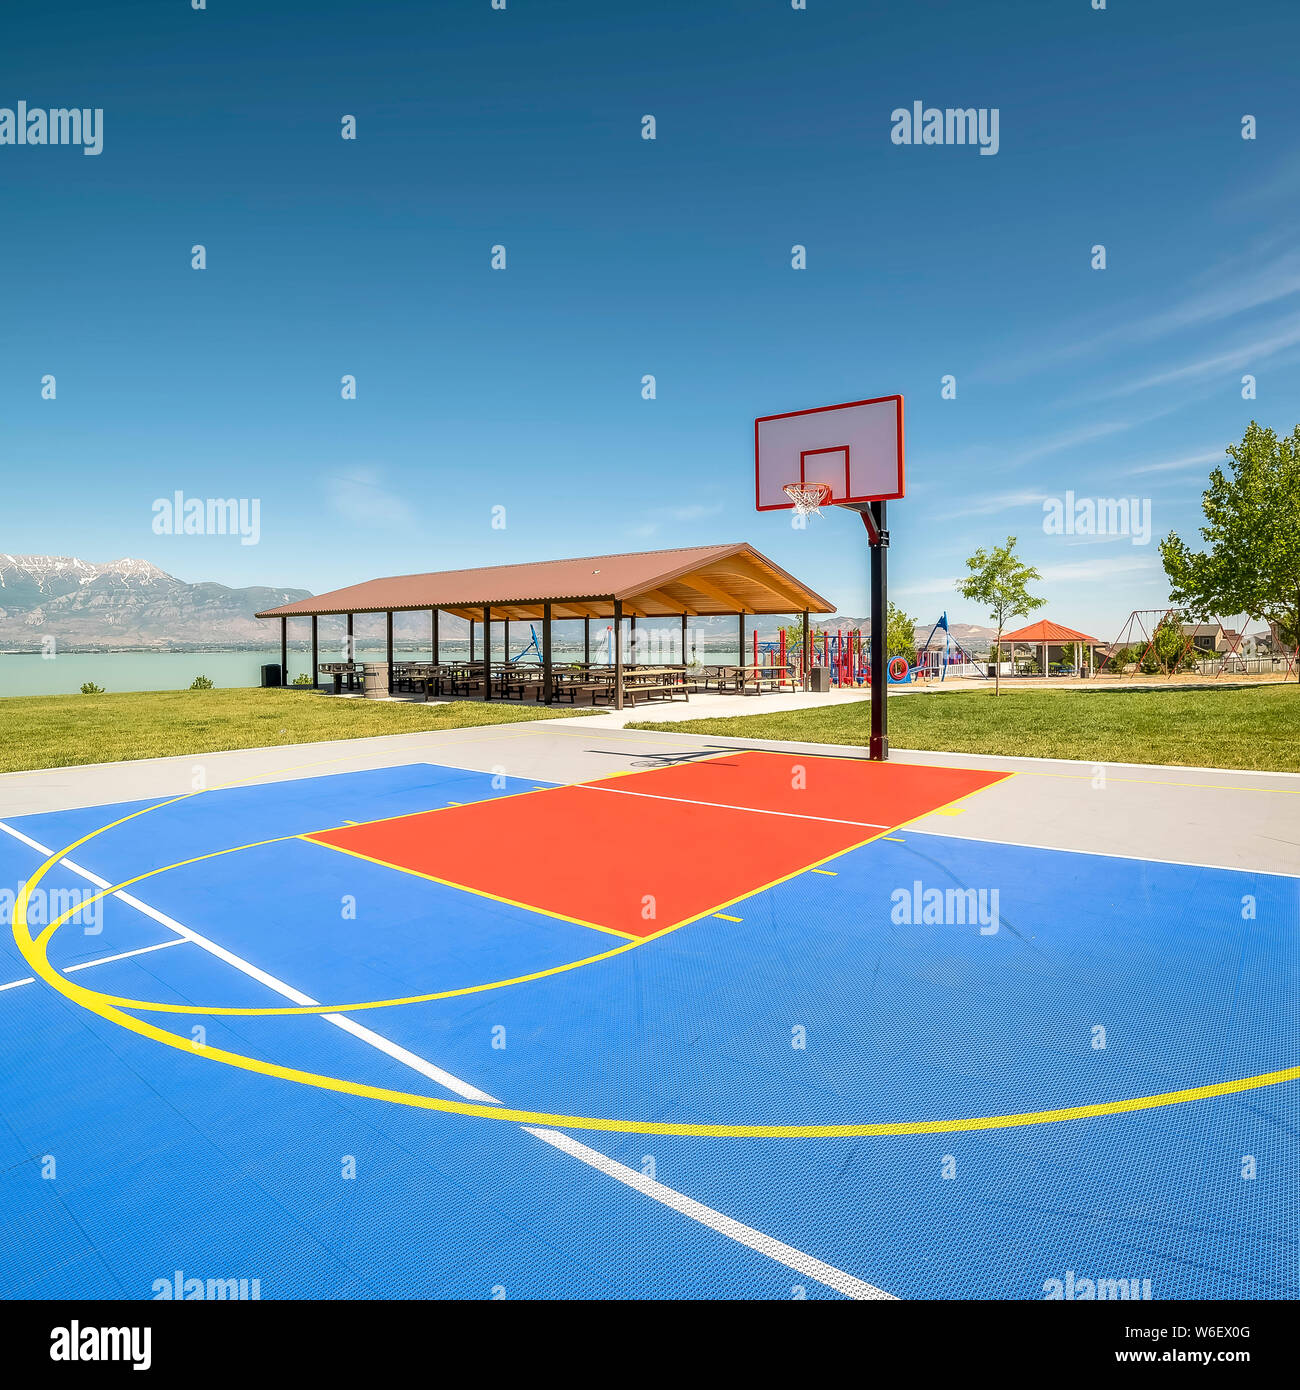 Square Frame Outdoor Basketball Court With A Picnic Pavilion And Playground In The Background Stock Photo Alamy